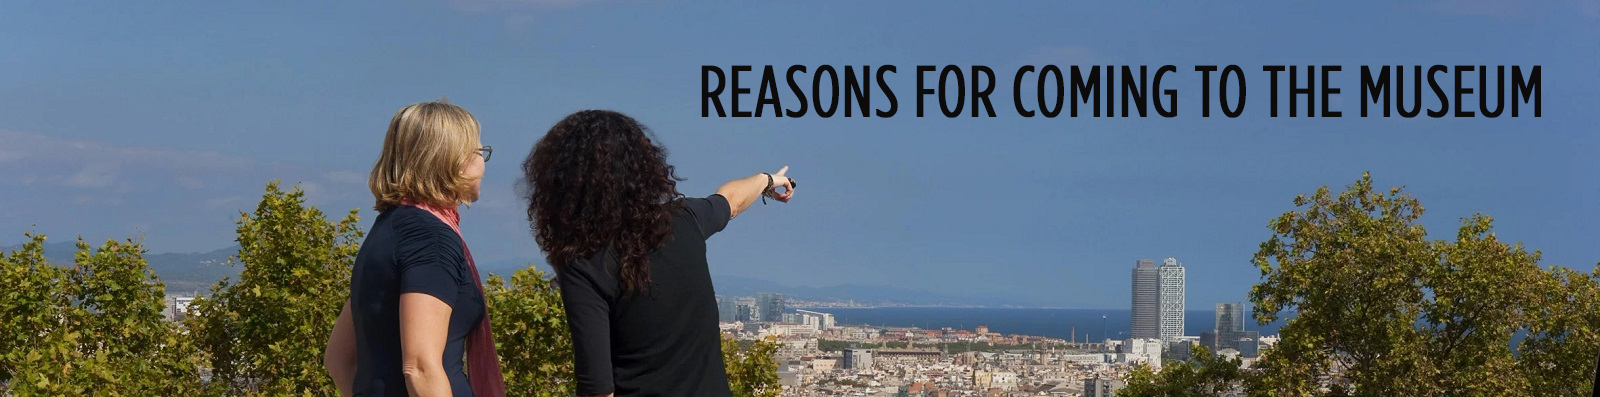 Reasons for coming to the museum